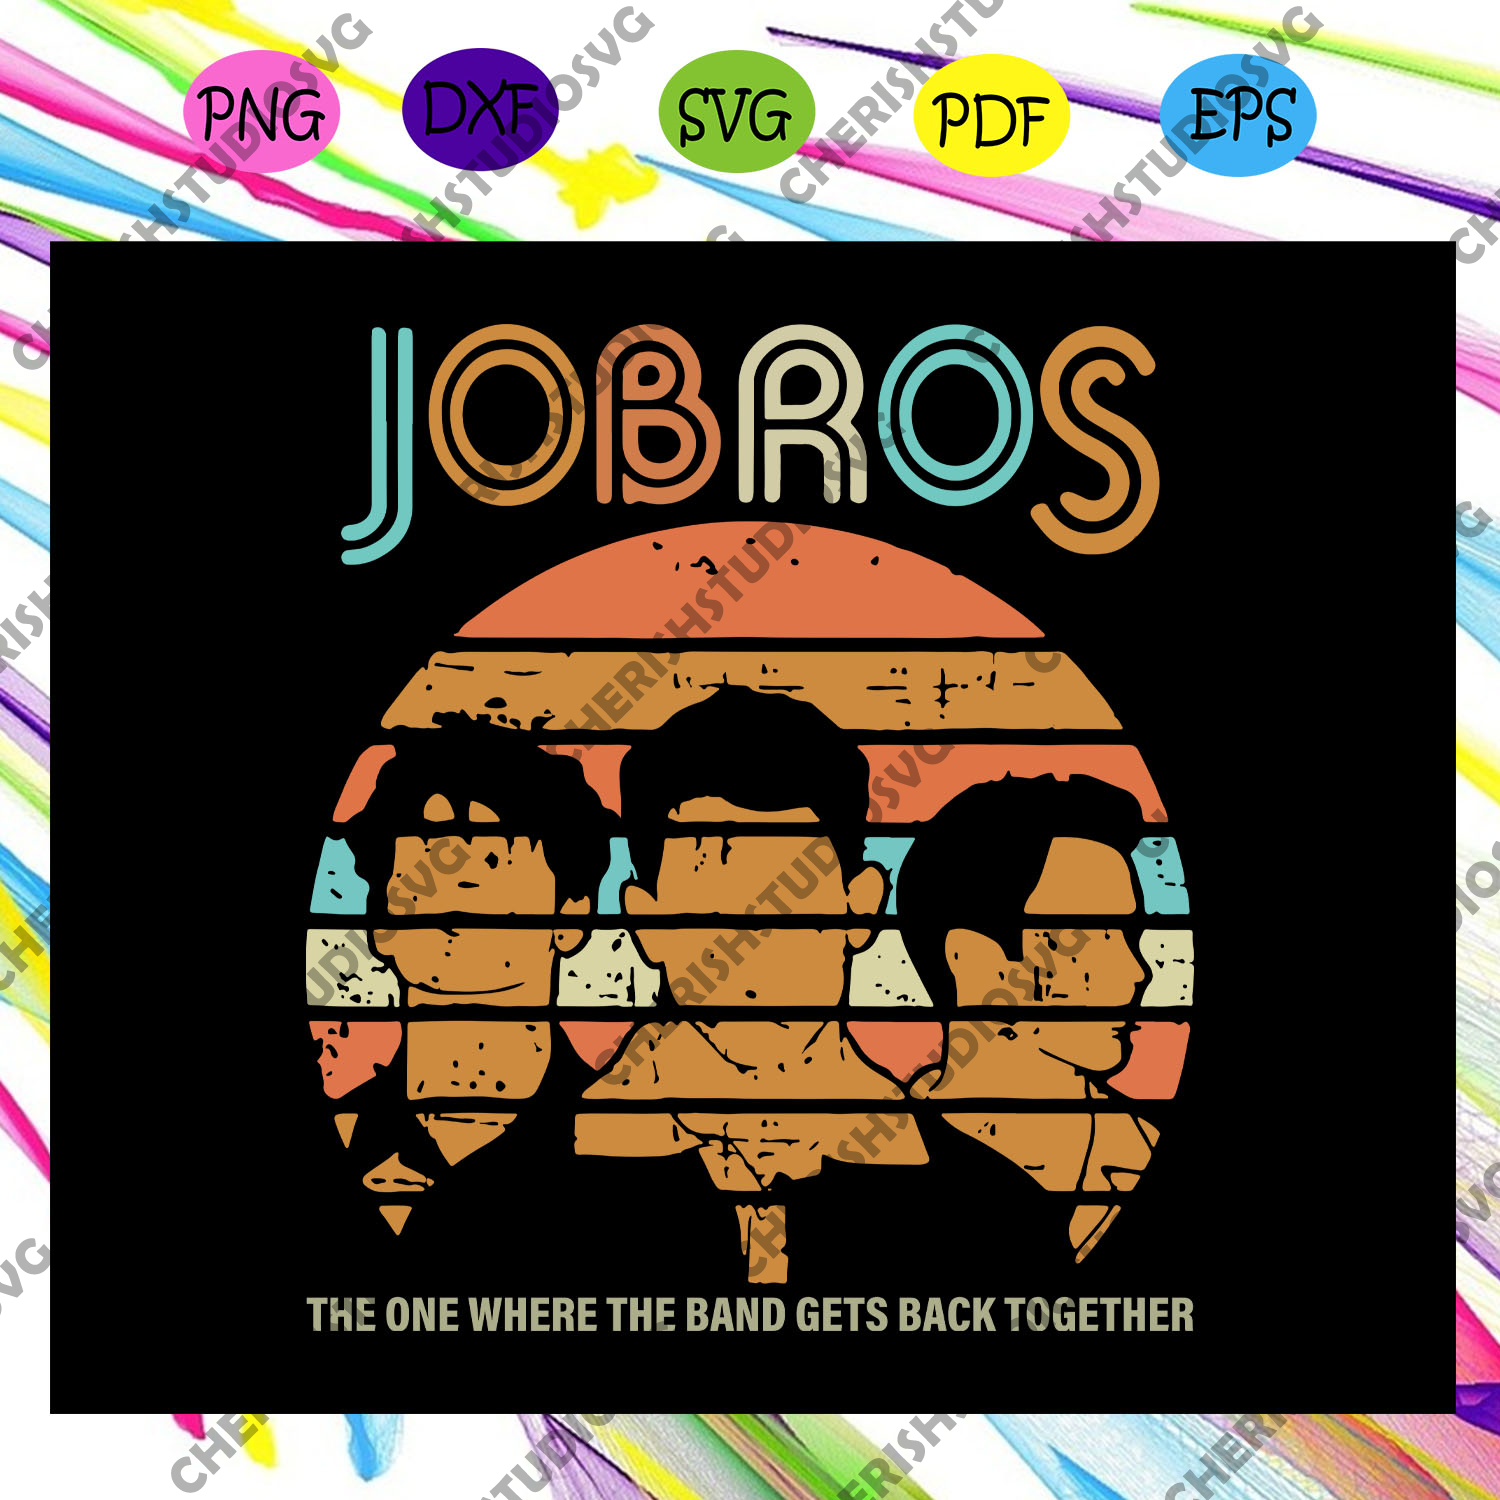 Jobros the one where the band gets back together, jonas brothers, nick jonas, joe jonas, kevin jonas, jonas, jonas svg, the jonas brothers, trending svg For Silhouette, Files For Cricut, SVG, DXF, EPS, PNG Instant Download